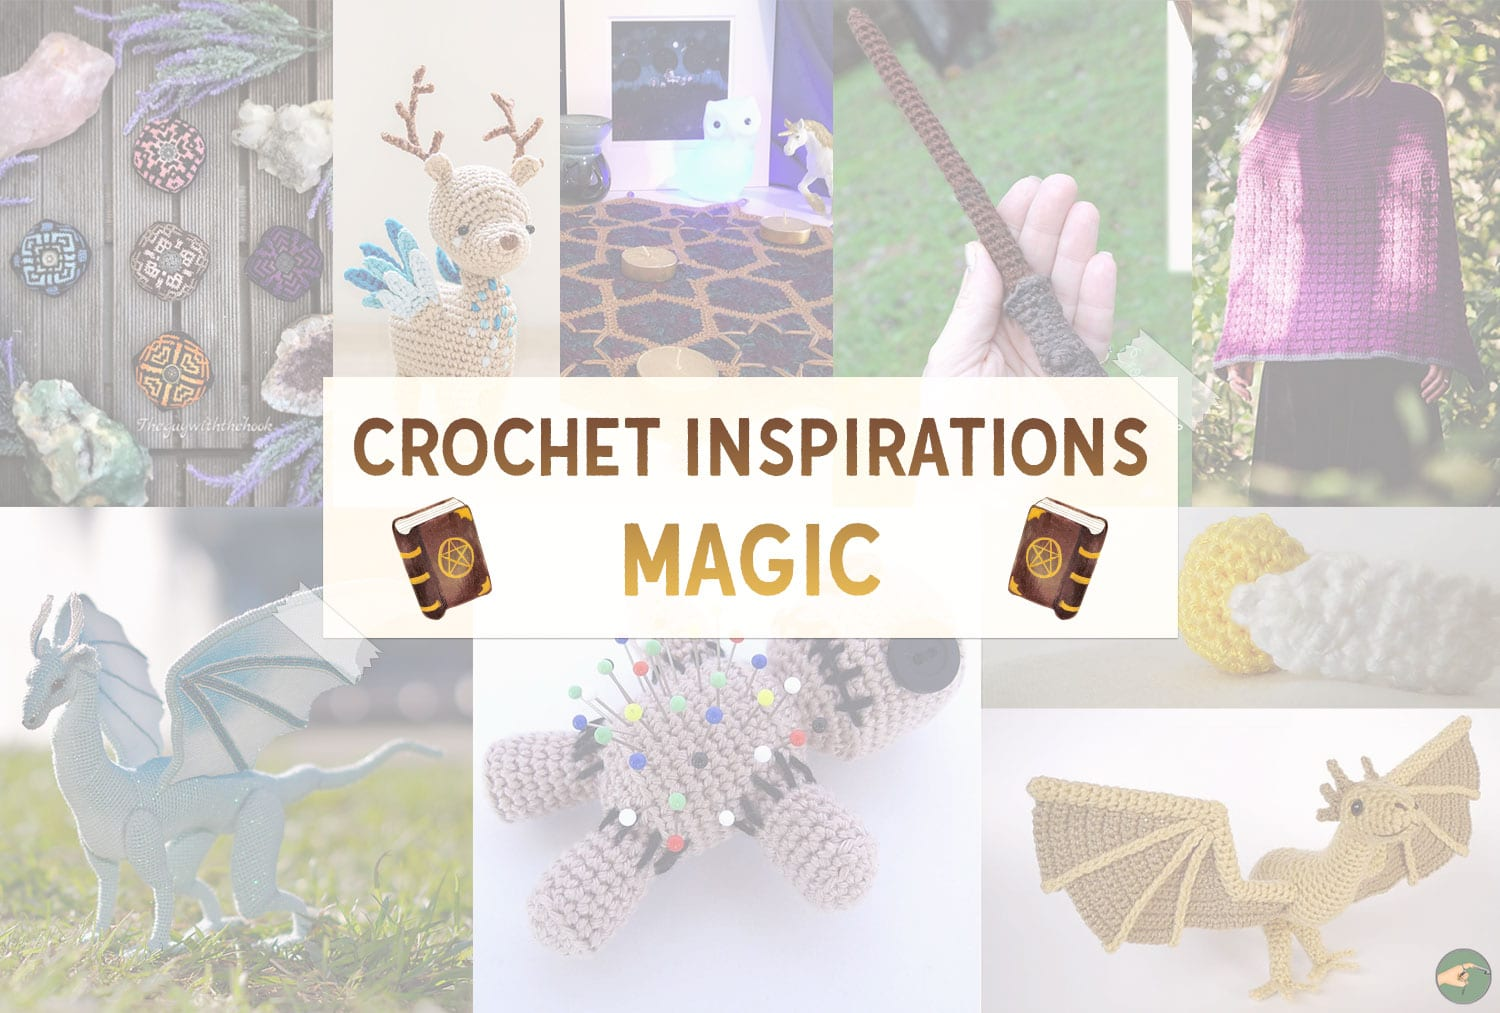 Crochet Inspirations : Magic